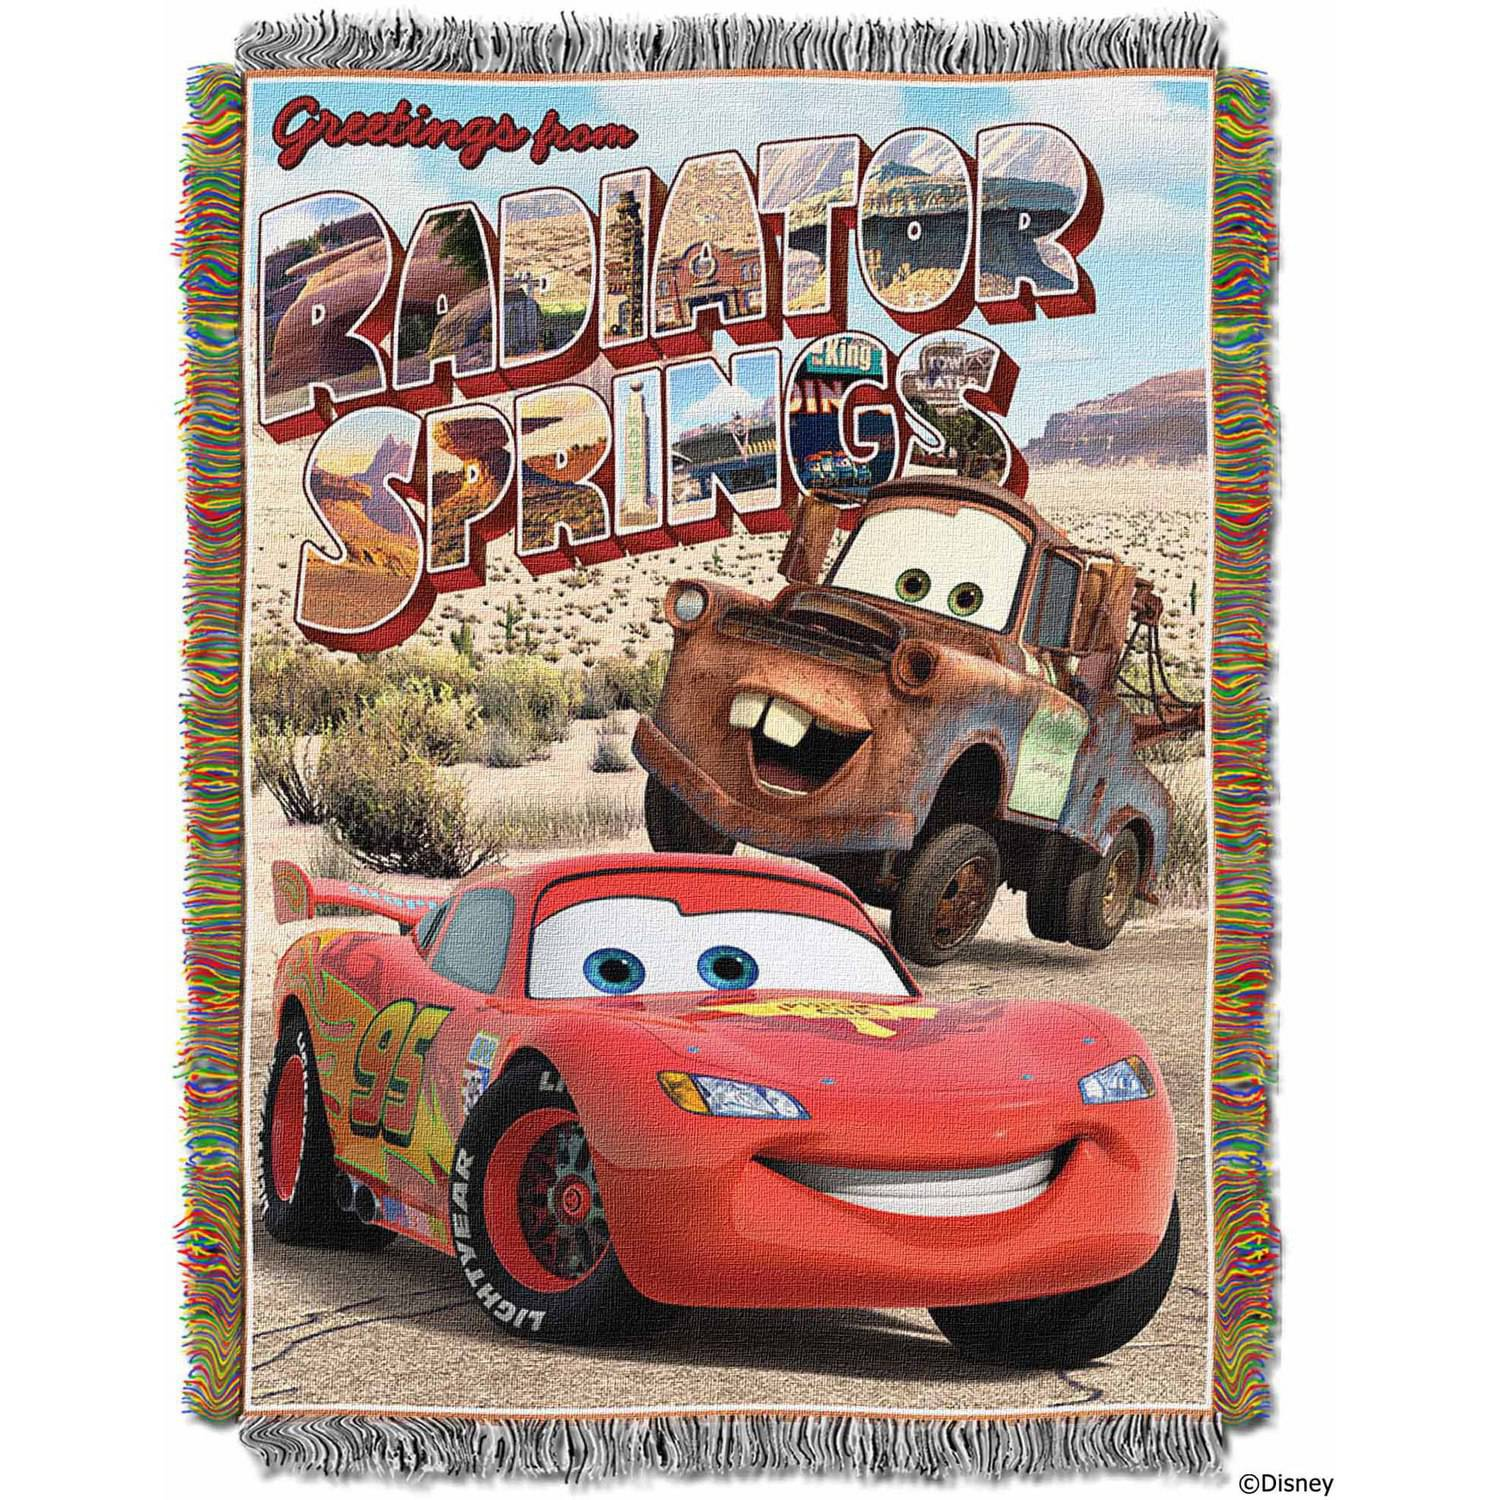 "Disney Pixar's Cars ""Greetings from Radiator Springs"" 48"" x 60"" Woven Tapestry Throw"